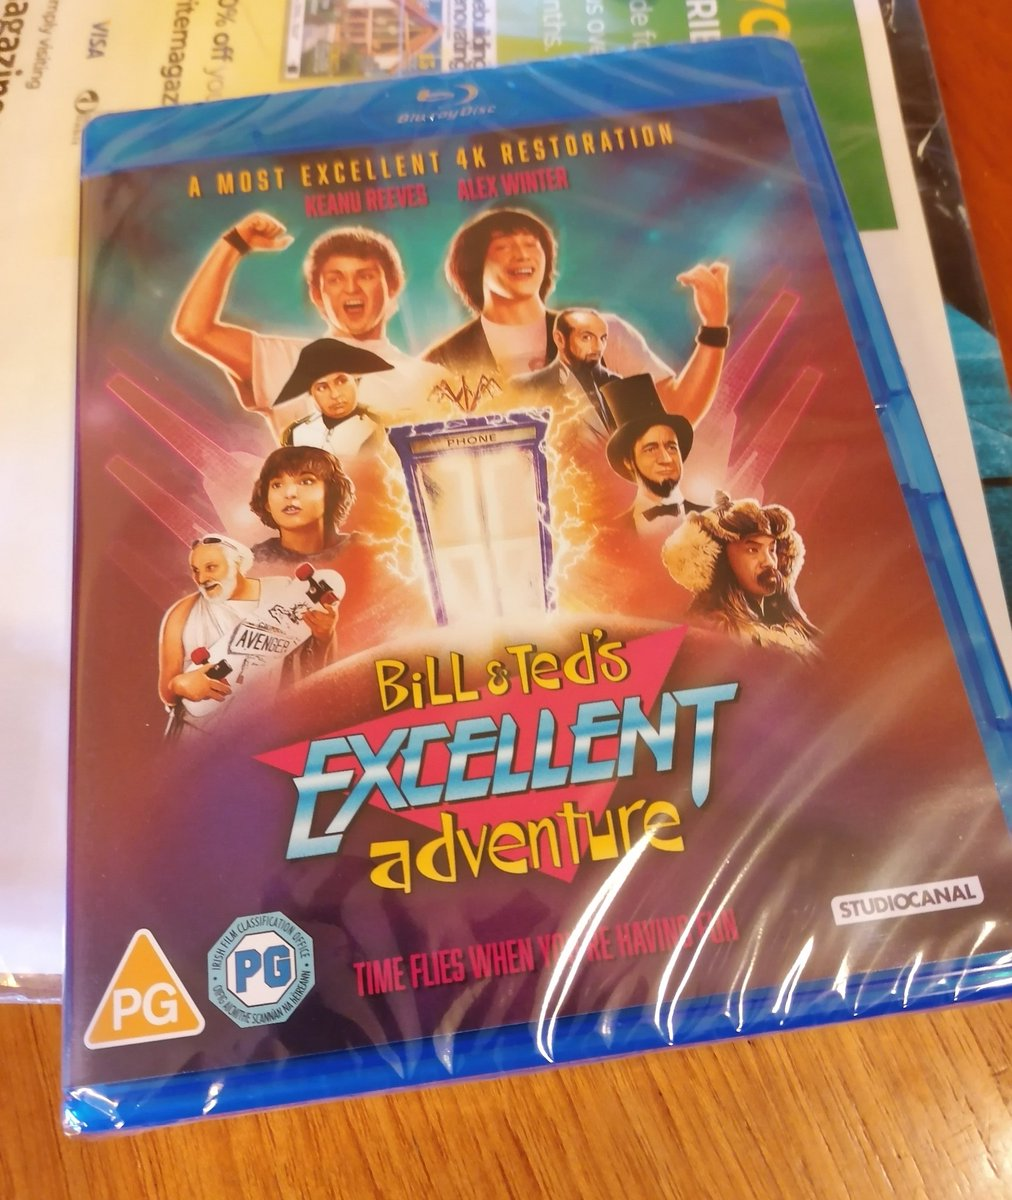 Well, I know what I'm watching when I get home tonight. #BillAndTed pic.twitter.com/2XFtUAQJ8J